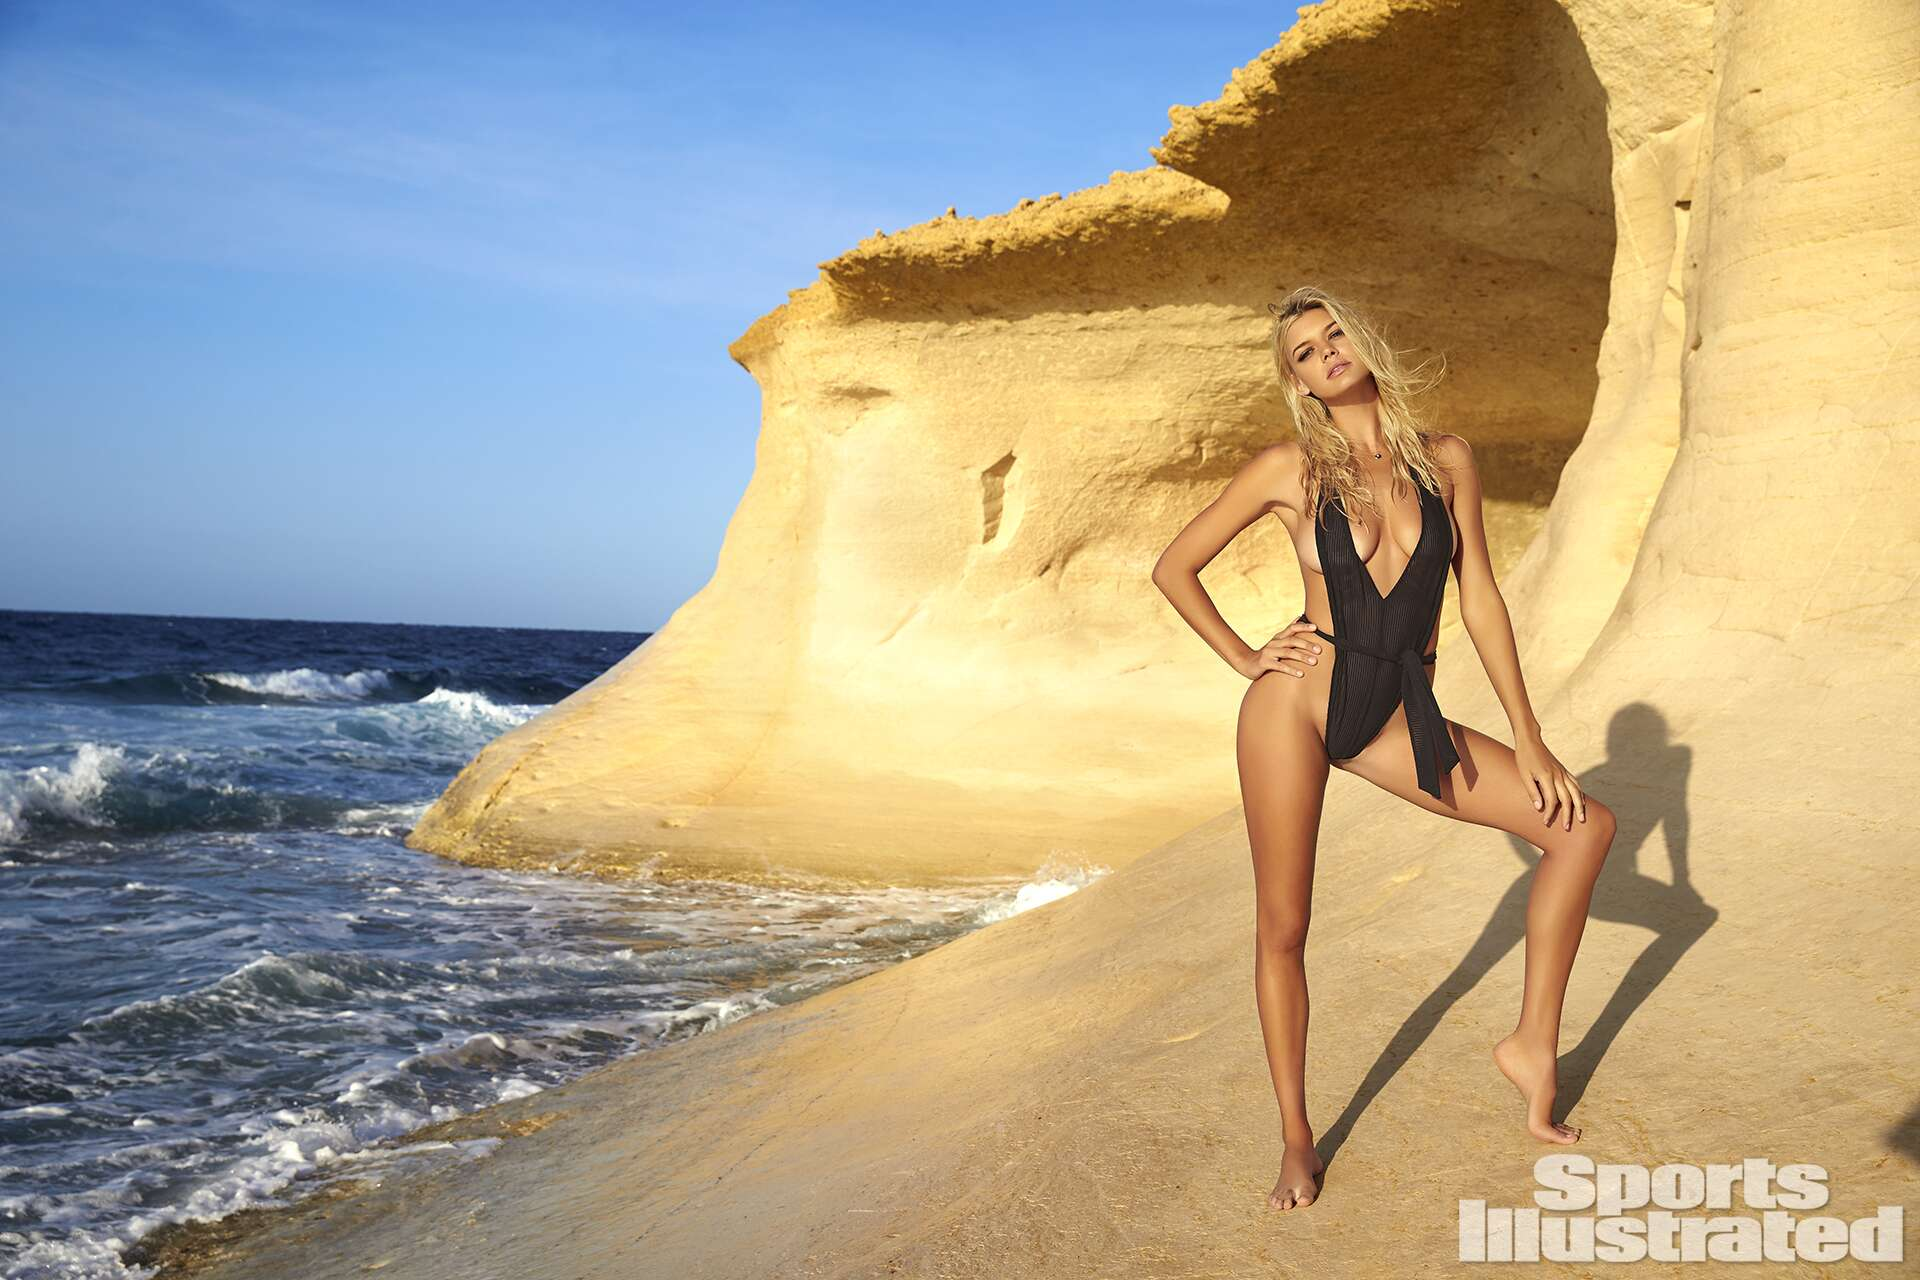 Kelly Rohrbach was photographed by Ben Watts in Malta. Swimsuit by Milkbaby Bikini By Cat Thordarson.